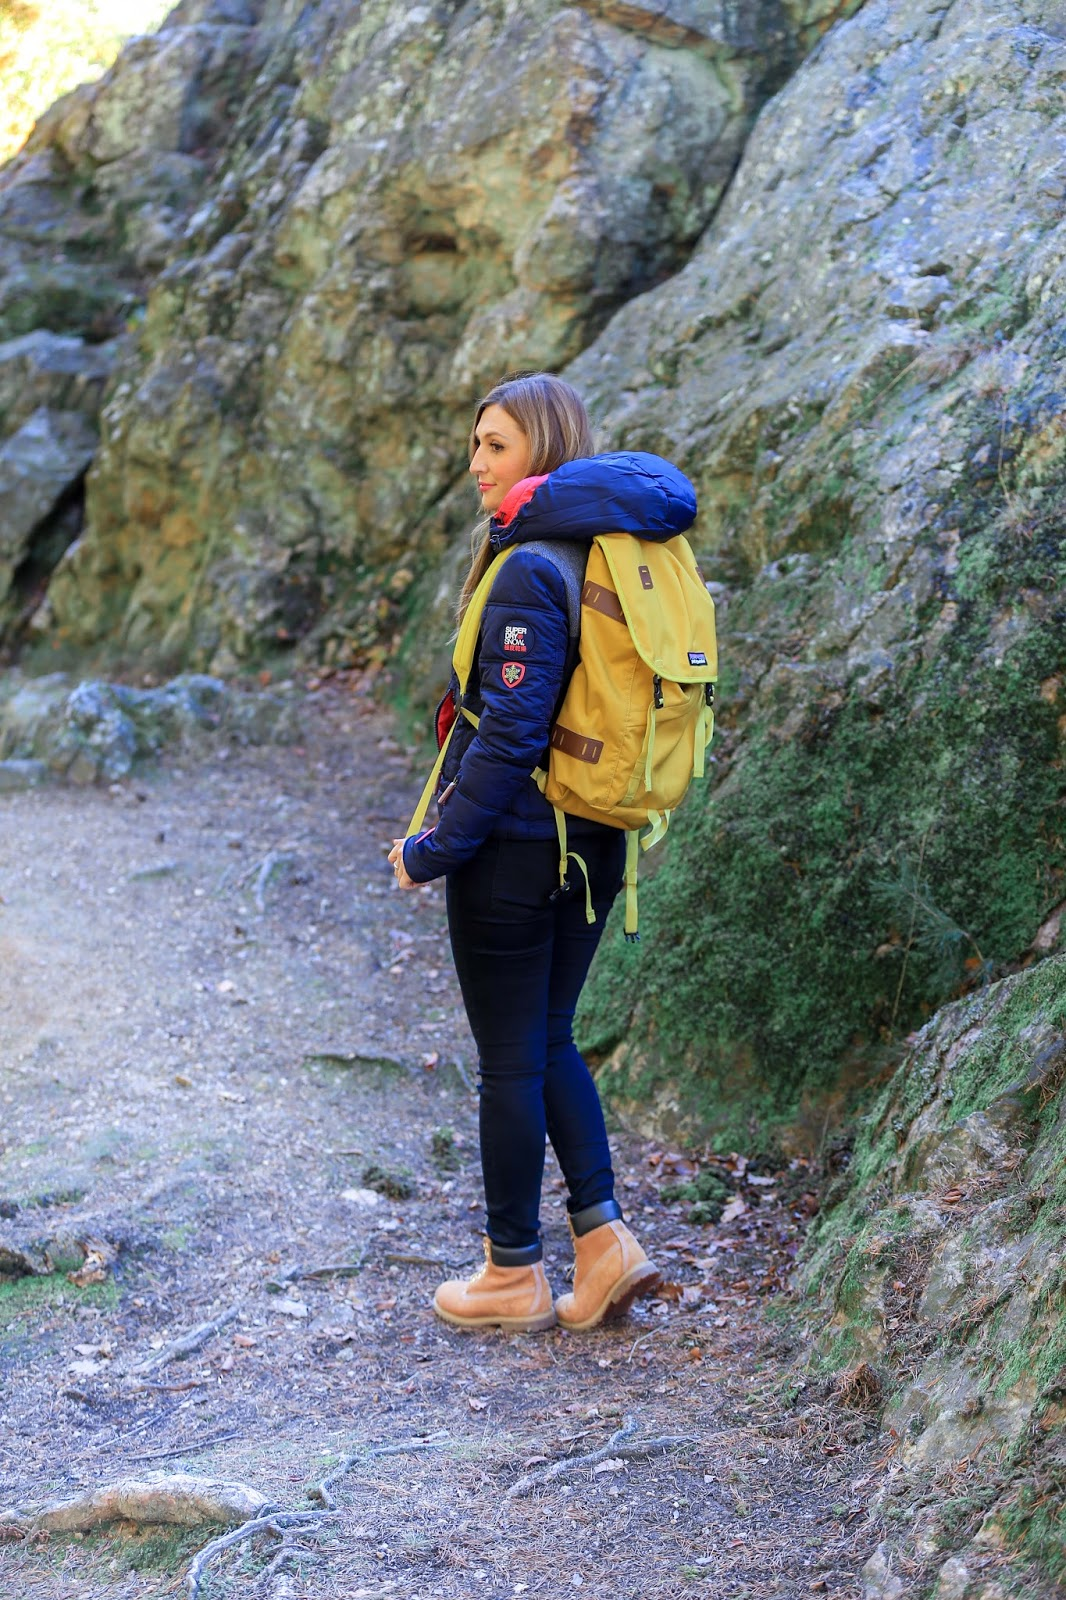 Patagonia-Patagonia-rucksack-Outdoor-Outdoor.outfit-Outdoor-blogger-Timberland-schuhe-Timberland-boots-Wanderoutfit-was-trägt-man-zum-wandern